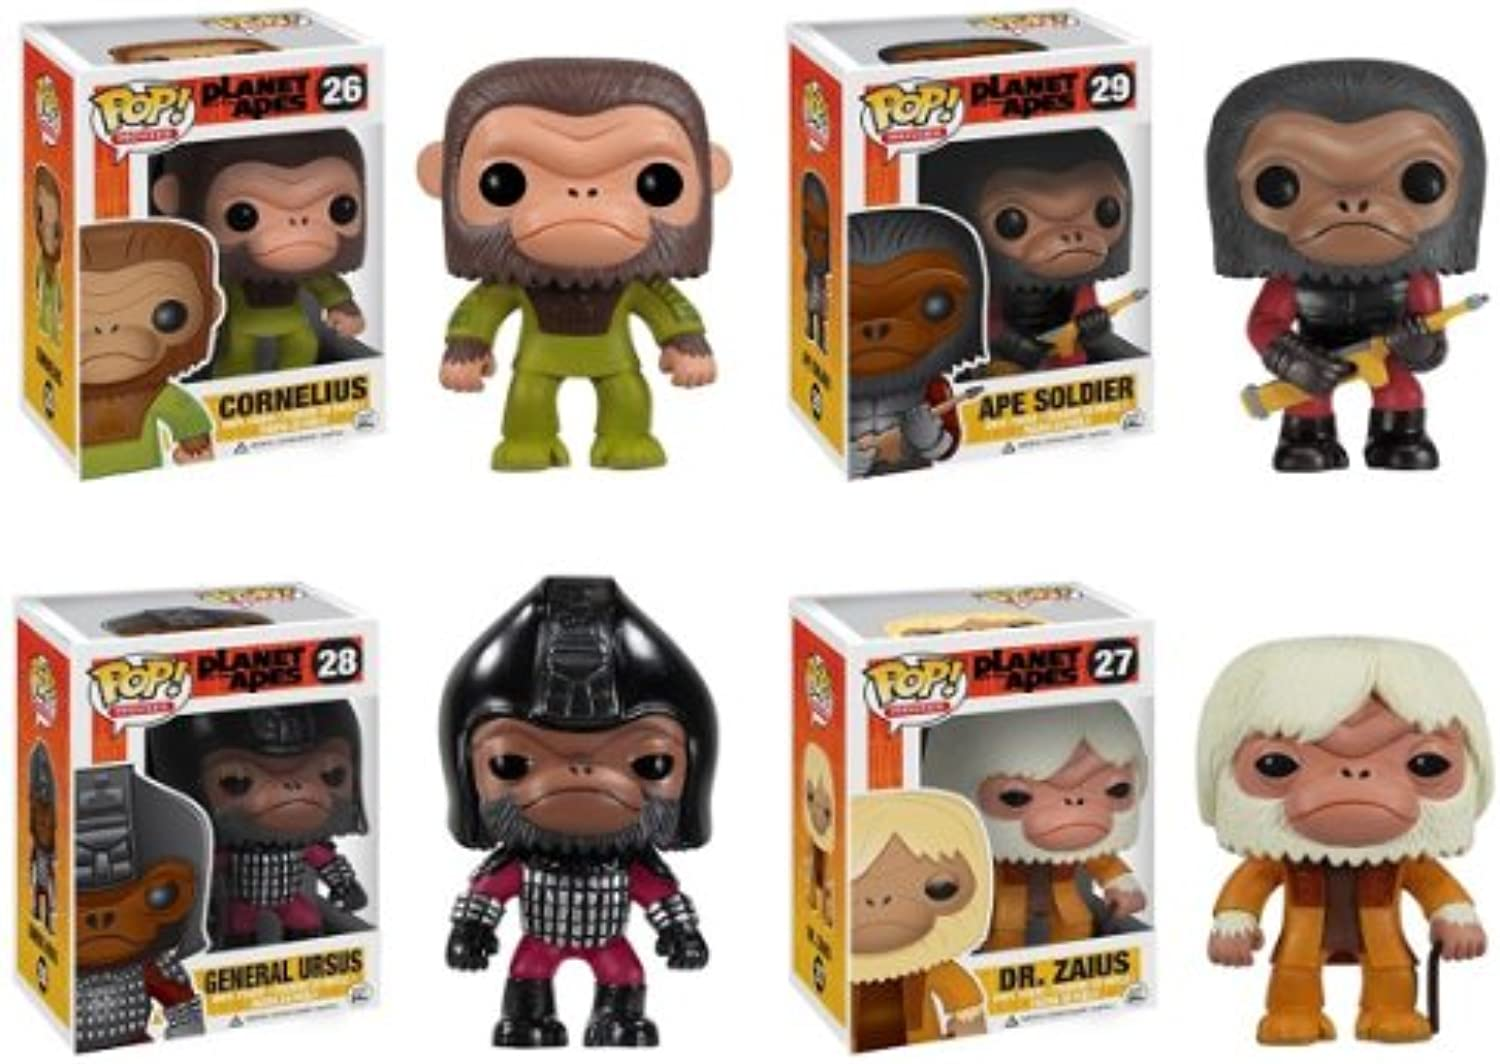 Funko Pop Planet of the Apes Set of 4  Cornelius, Dr. Zaius, General Ursus & an Ape Soldier